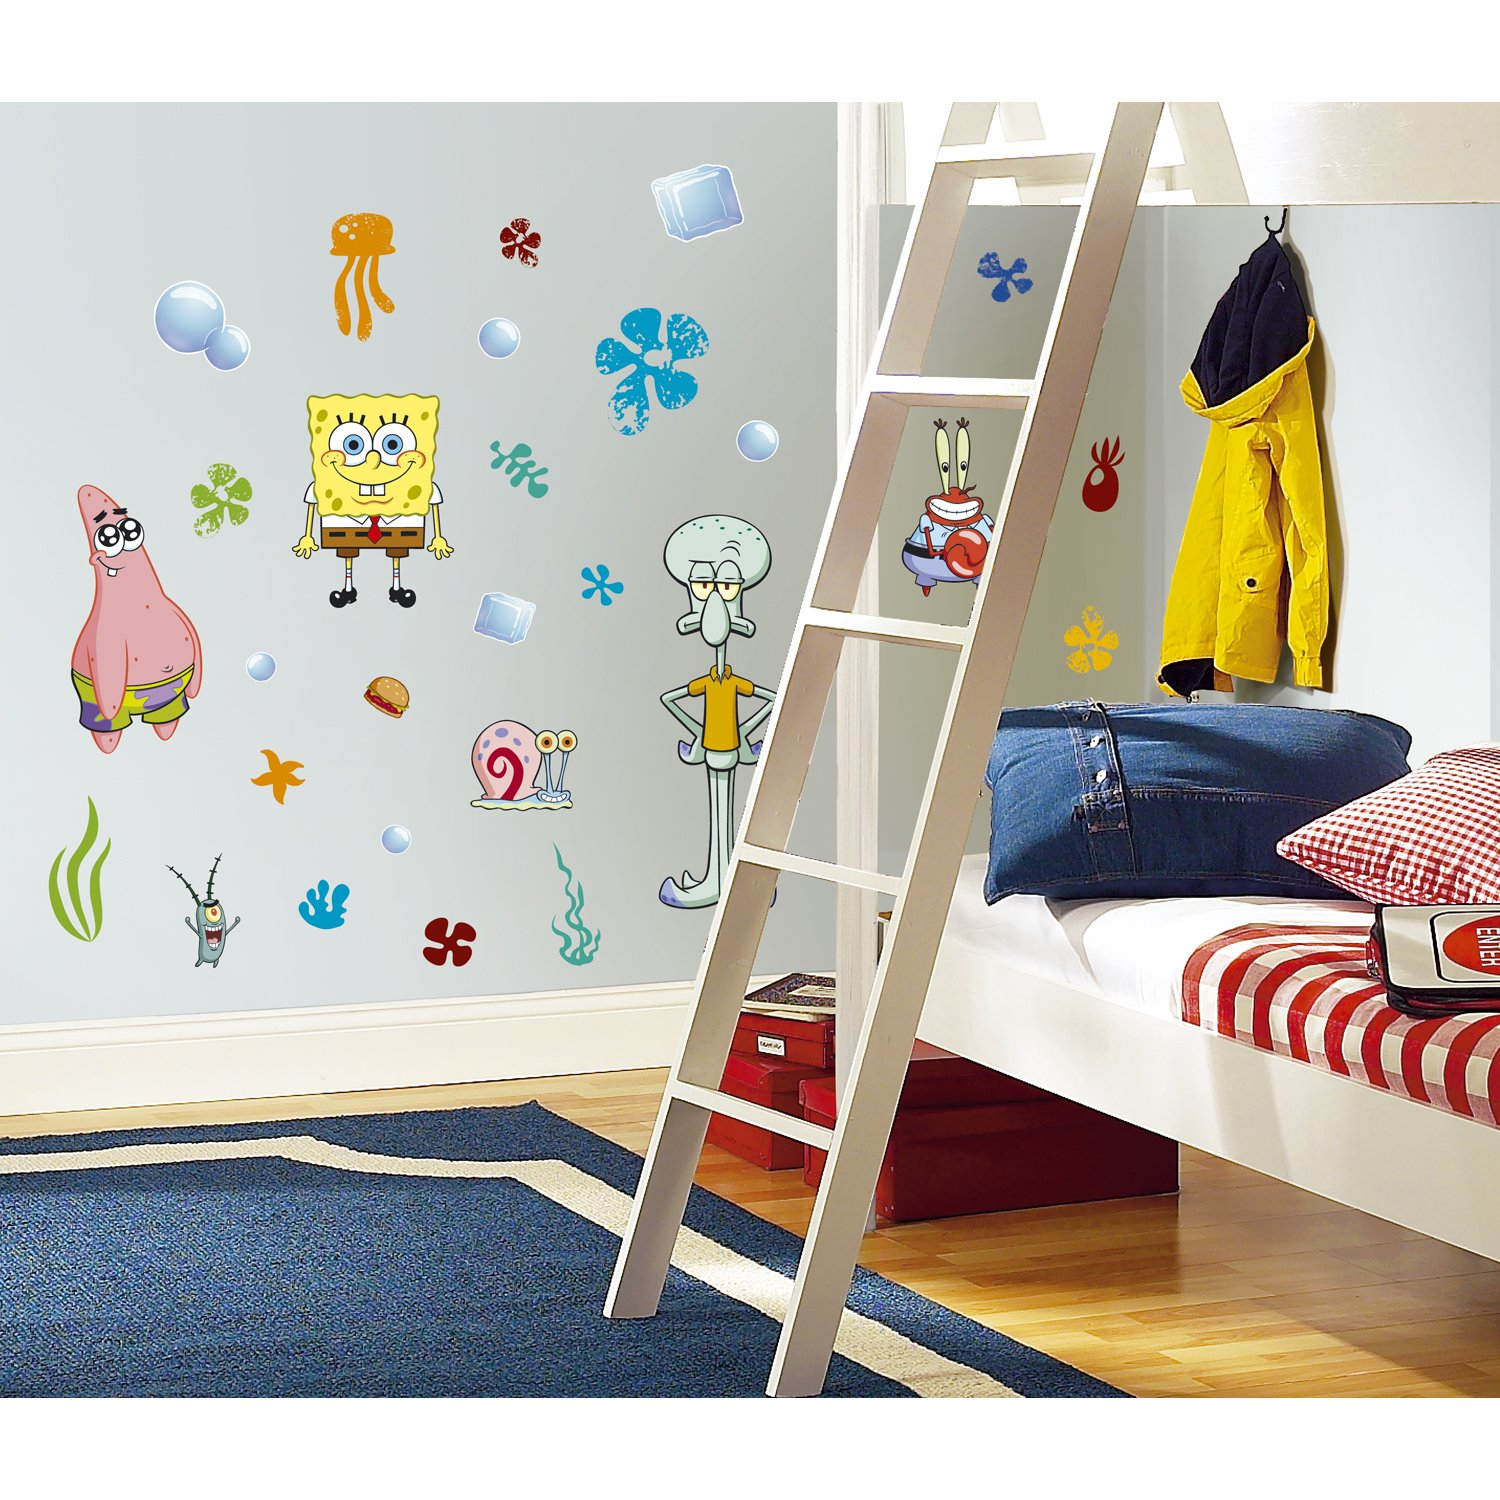 RoomMates RMK1380SCS Spongebob Squarepants Peel and Stick Wall Decals